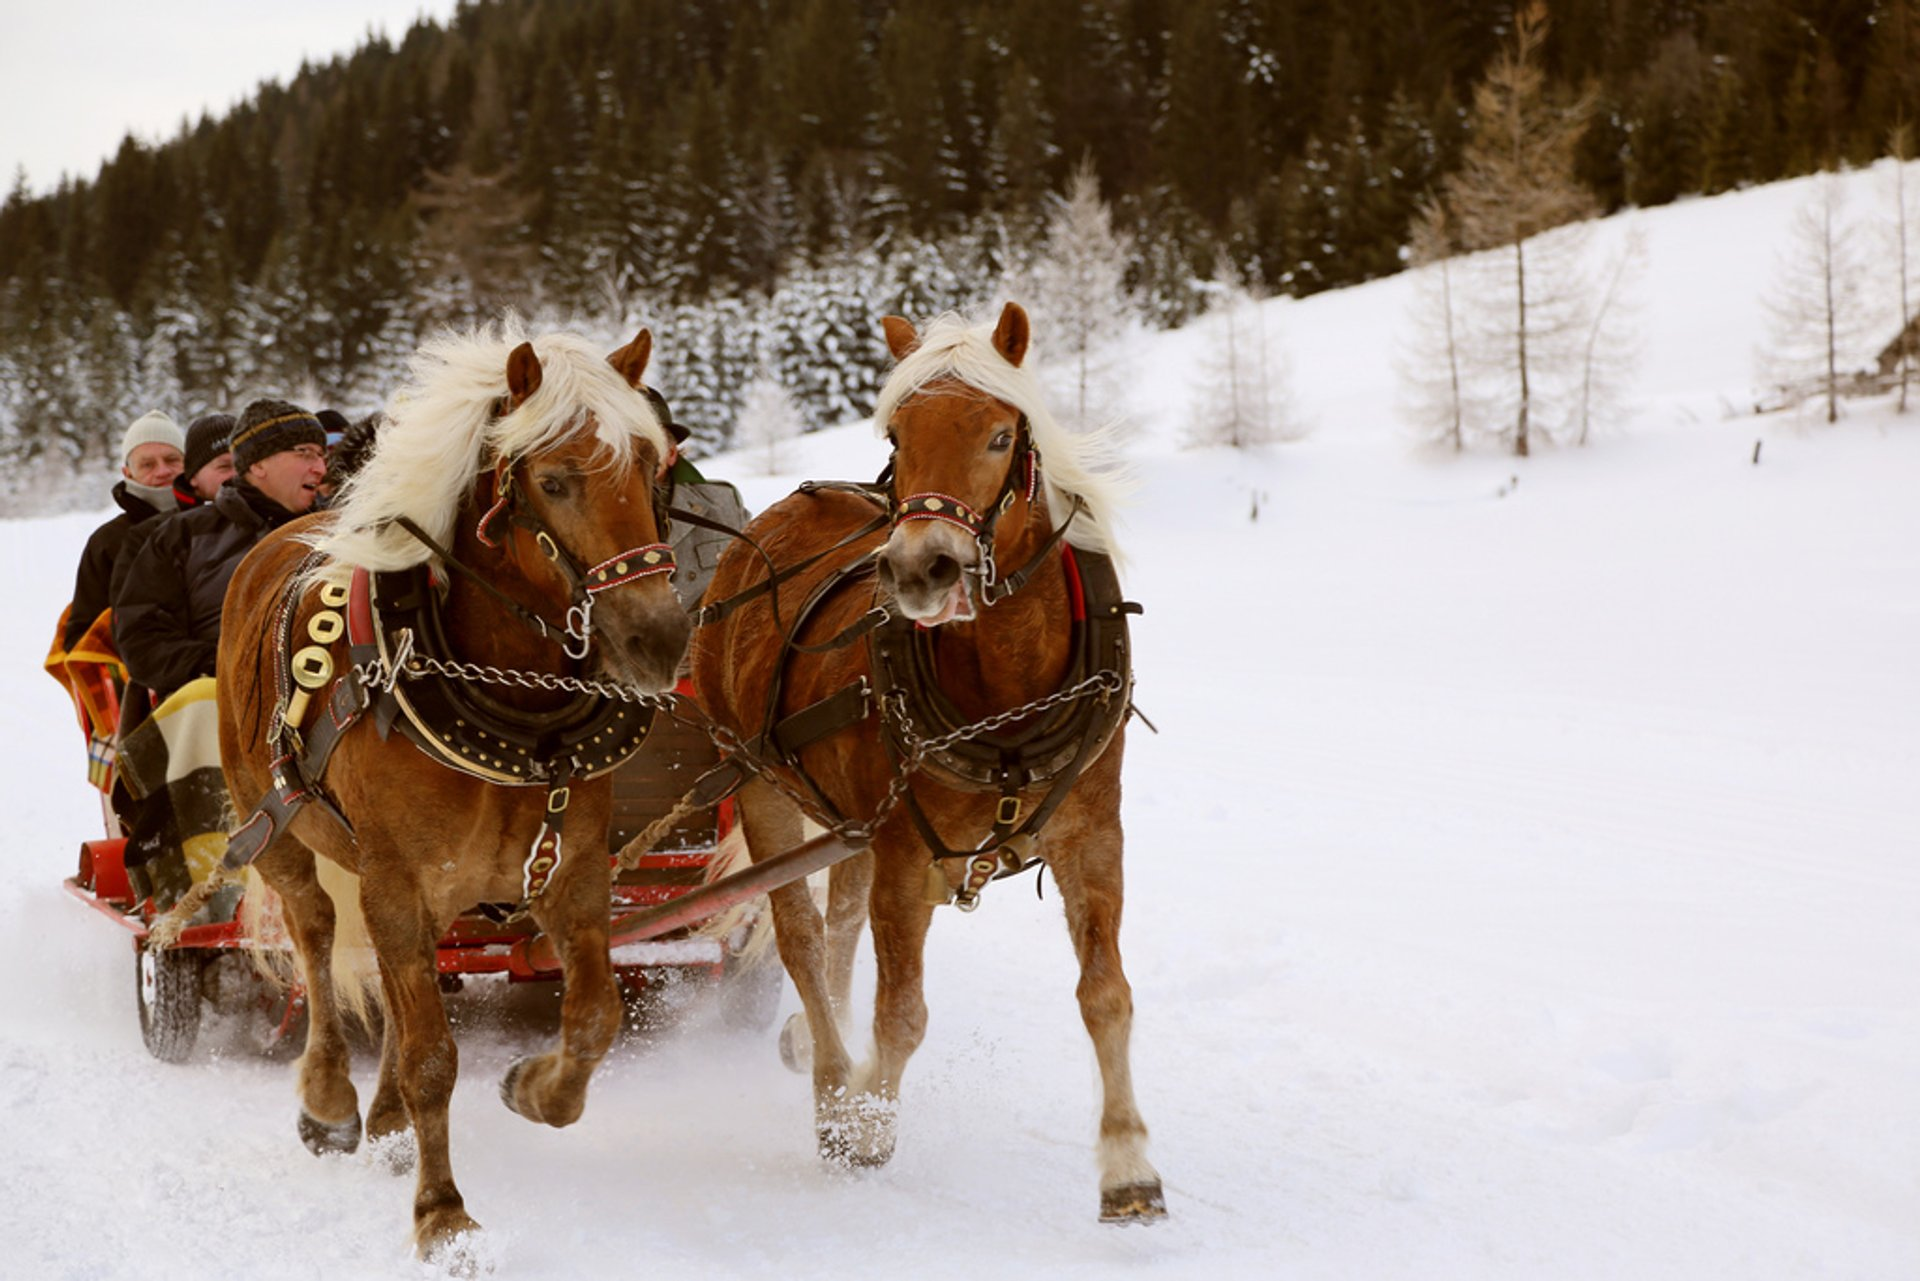 Winter Horse and Sleigh Ride in Austria - Best Season 2020